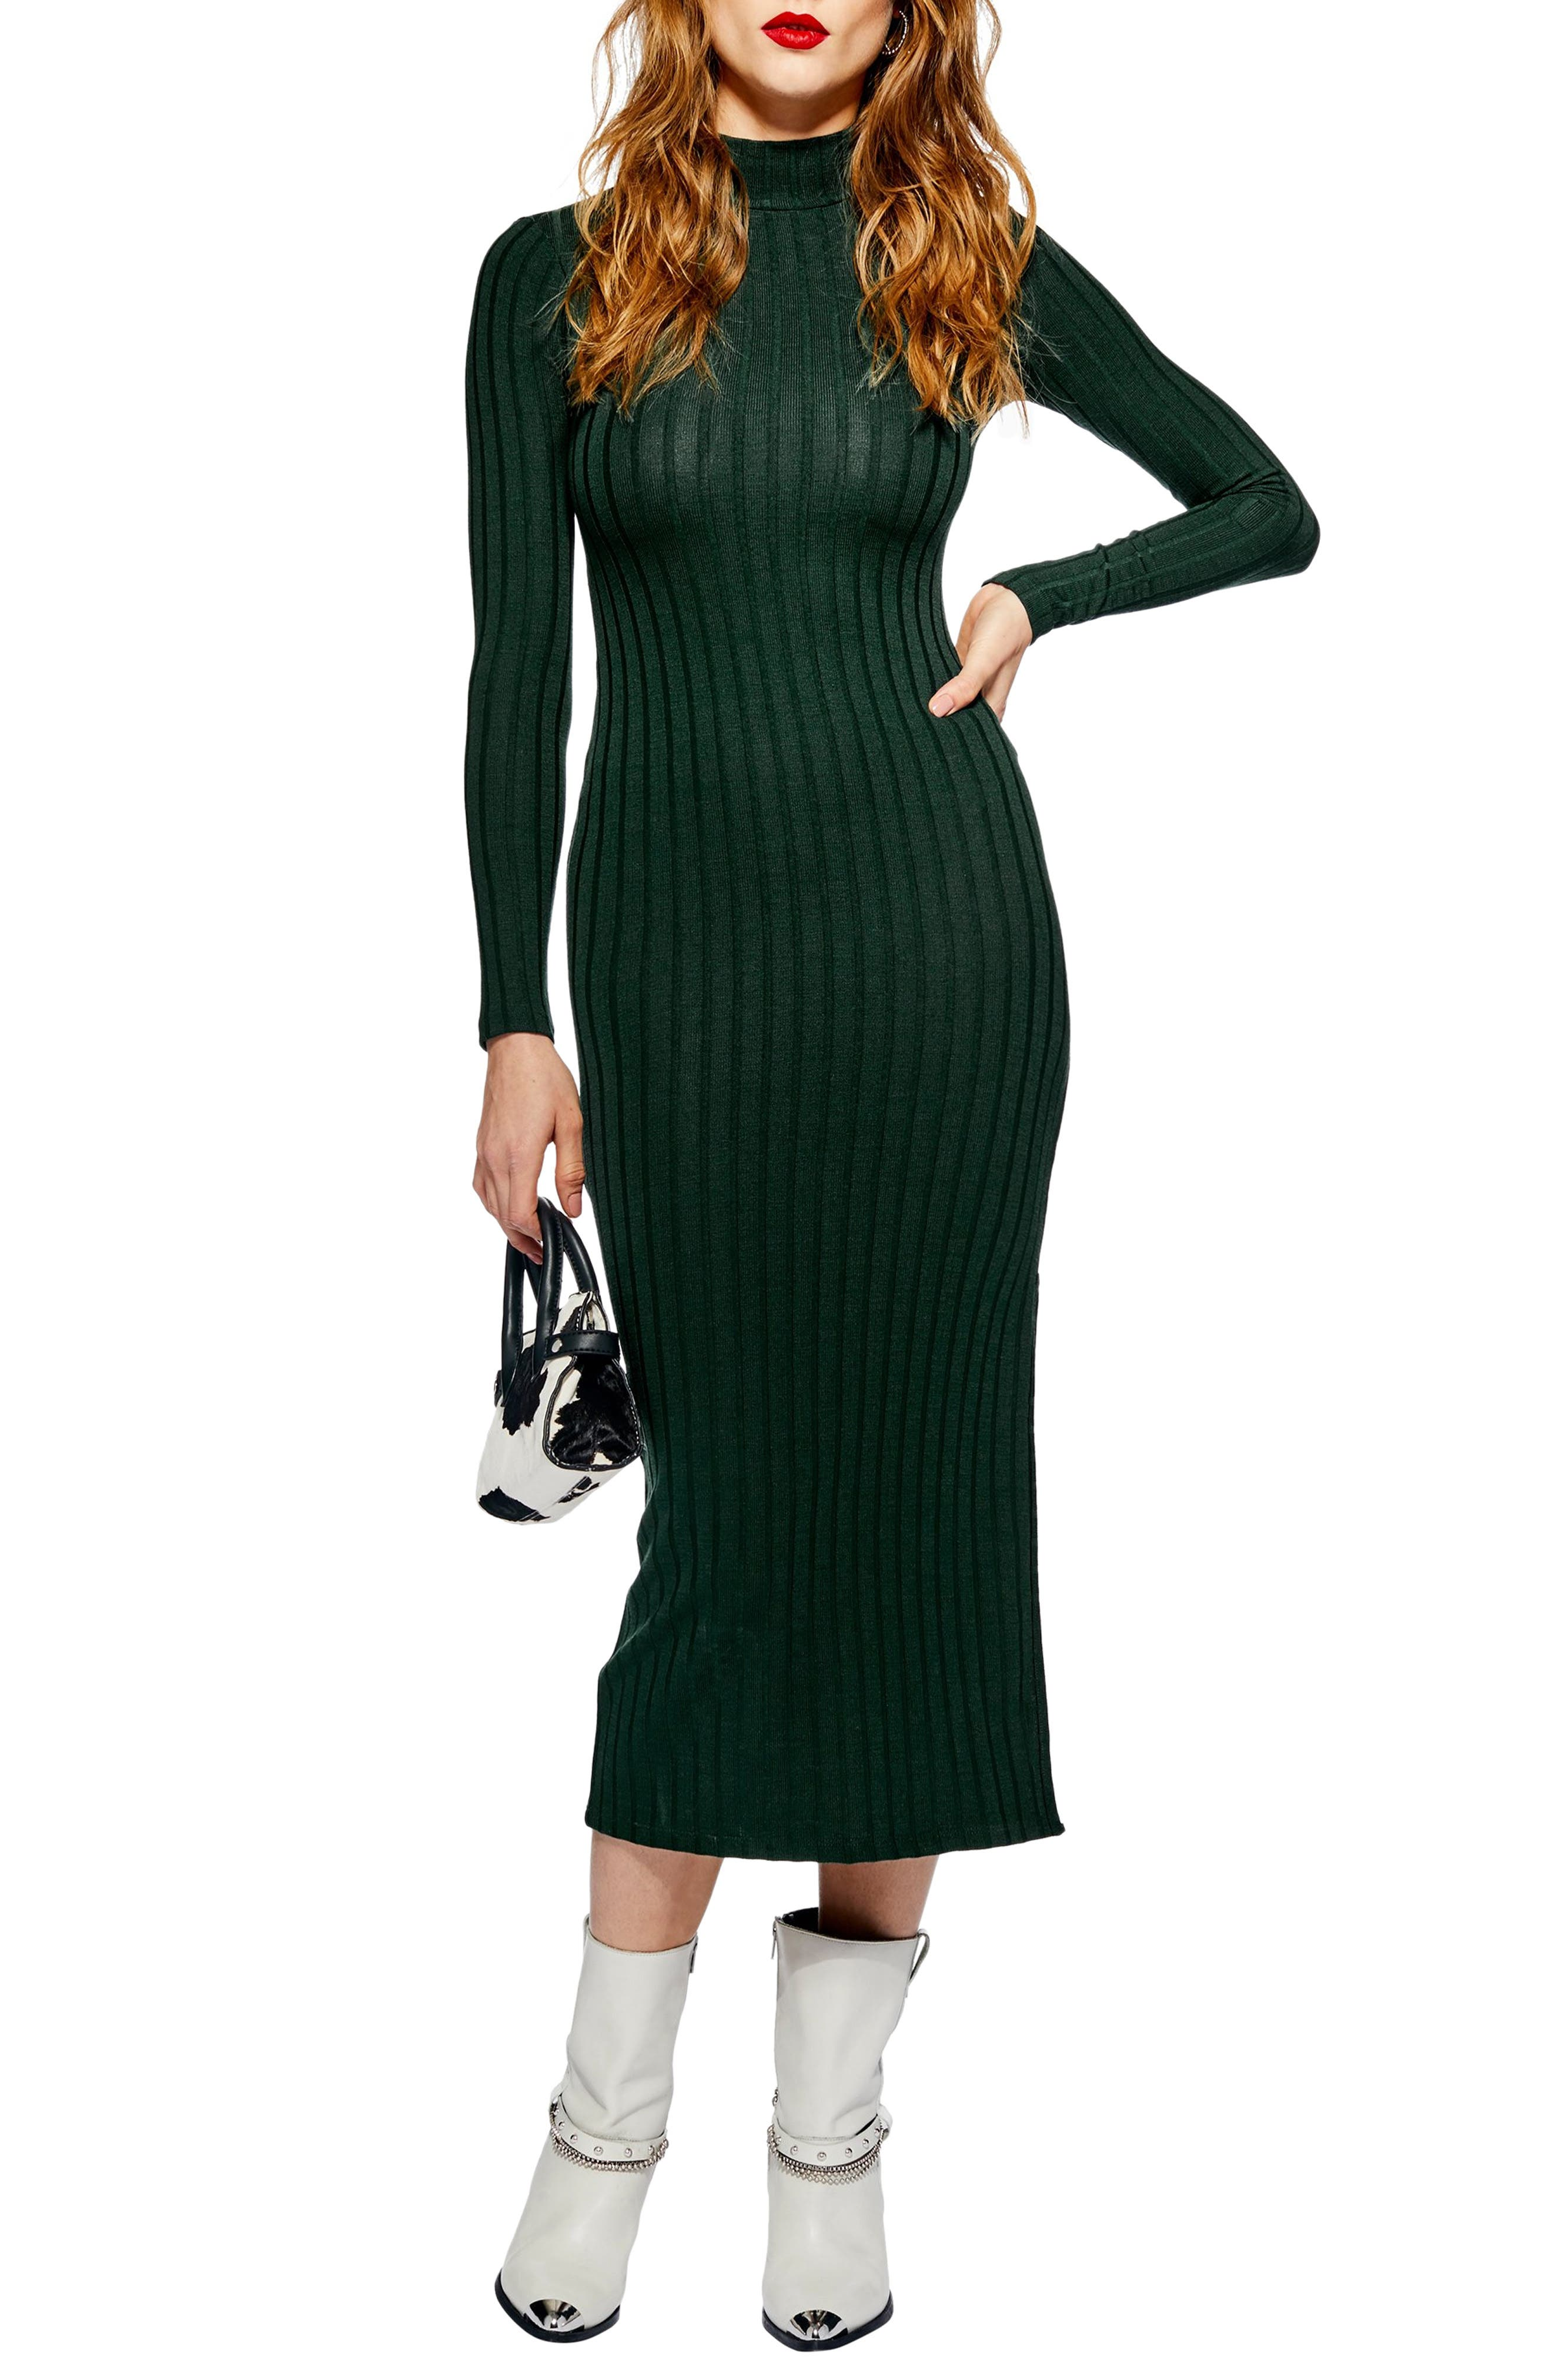 Topshop High Neck Ribbed Midi Dress, US (fits like 0) - Green